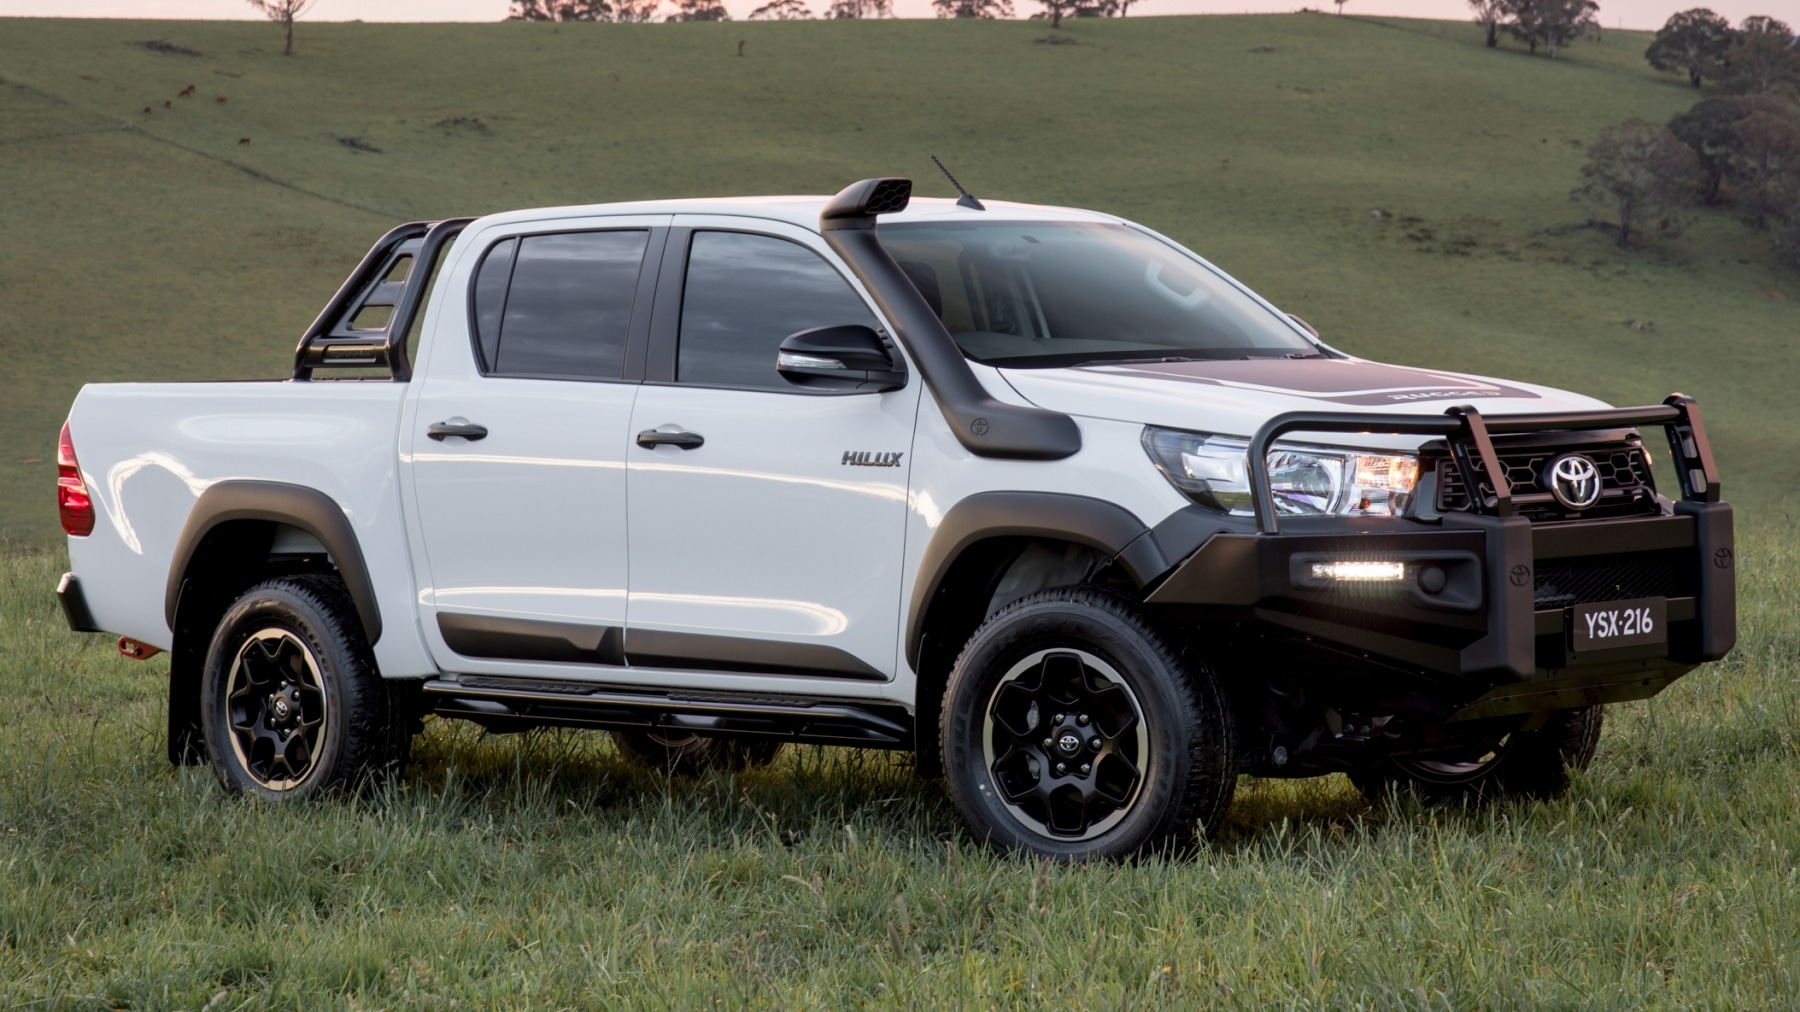 toyota hilux rugged x white color